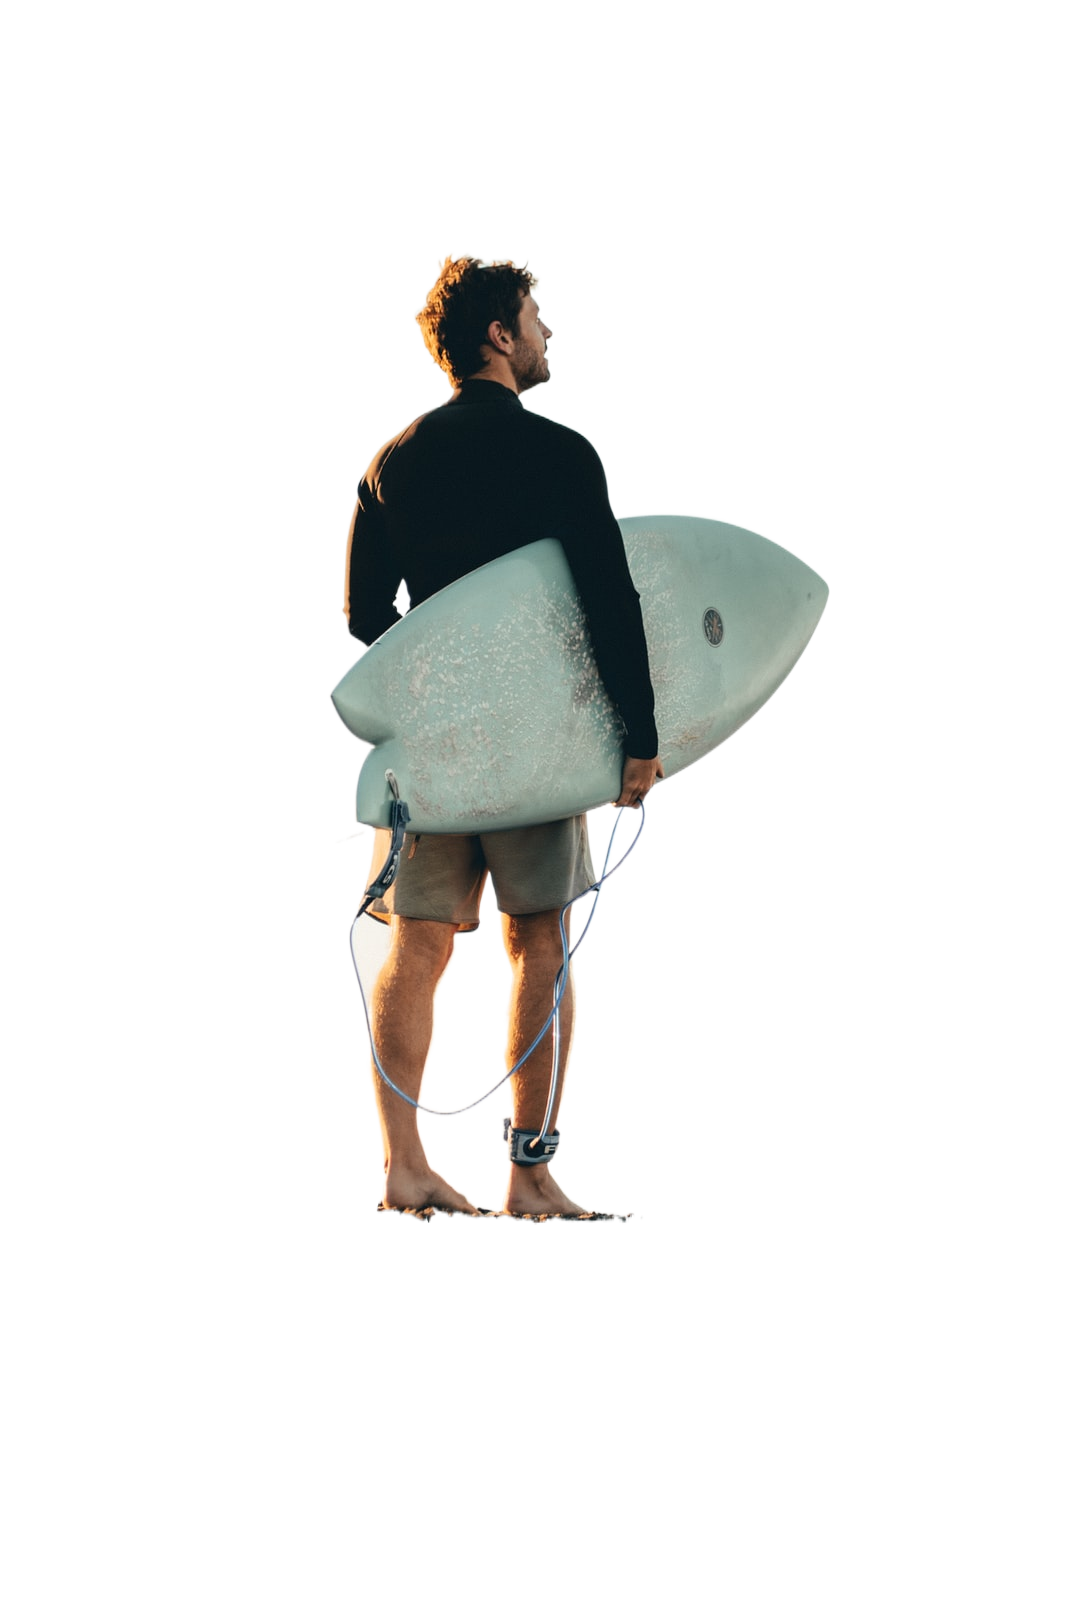 woman in black shirt holding white surfboard